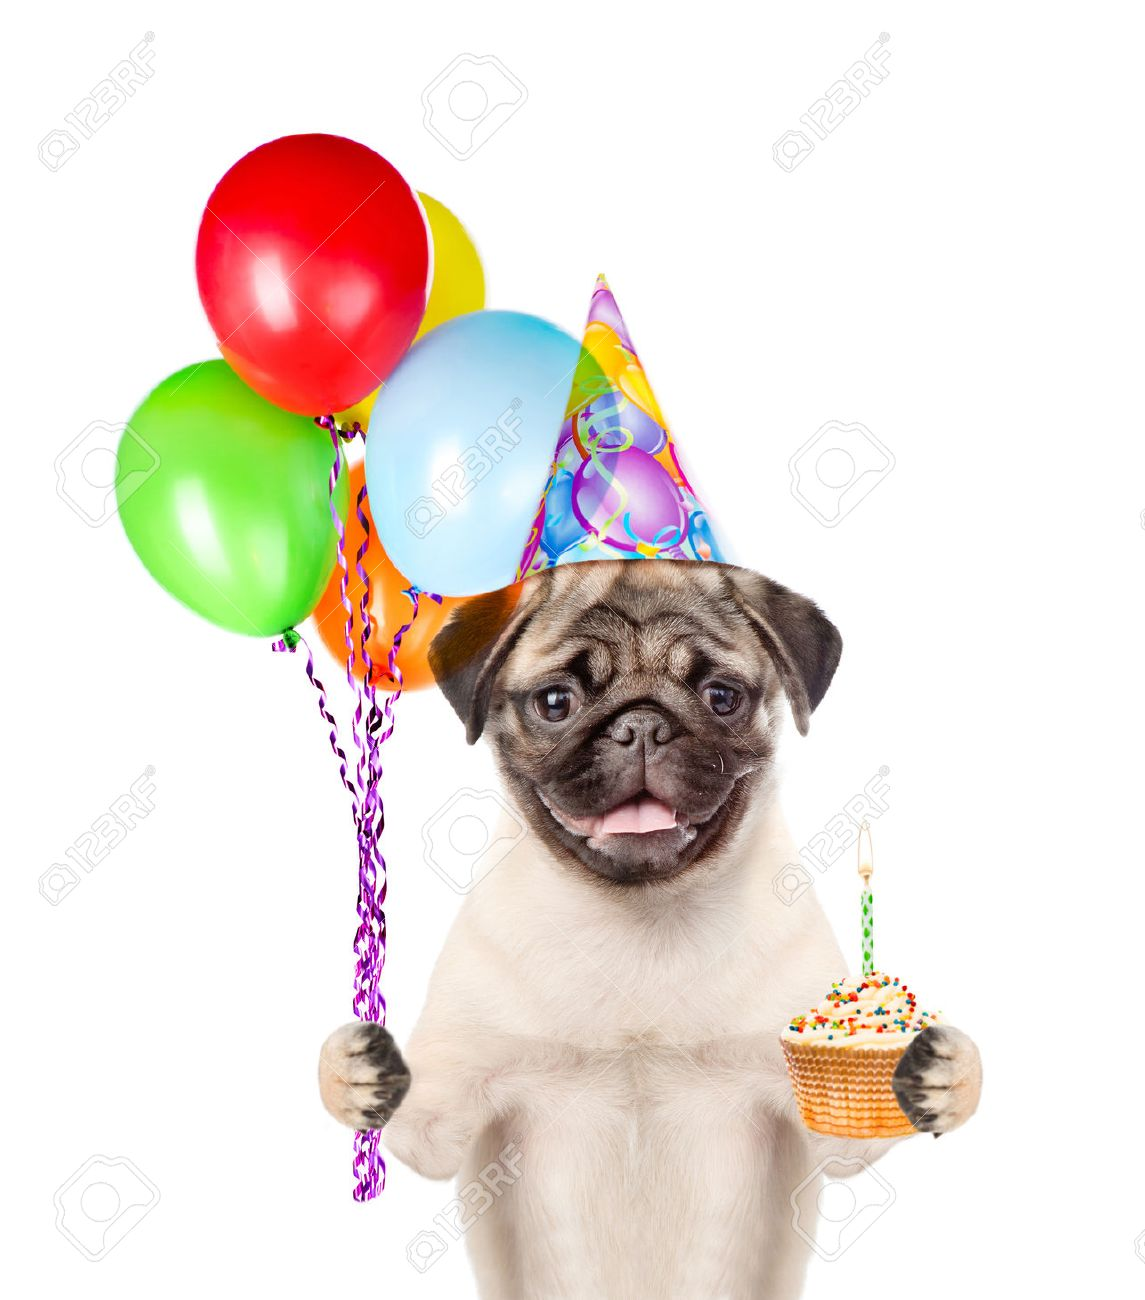 Dog In Birthday Hat Holding Balloons And Cake Isolated On White Background Stock Photo